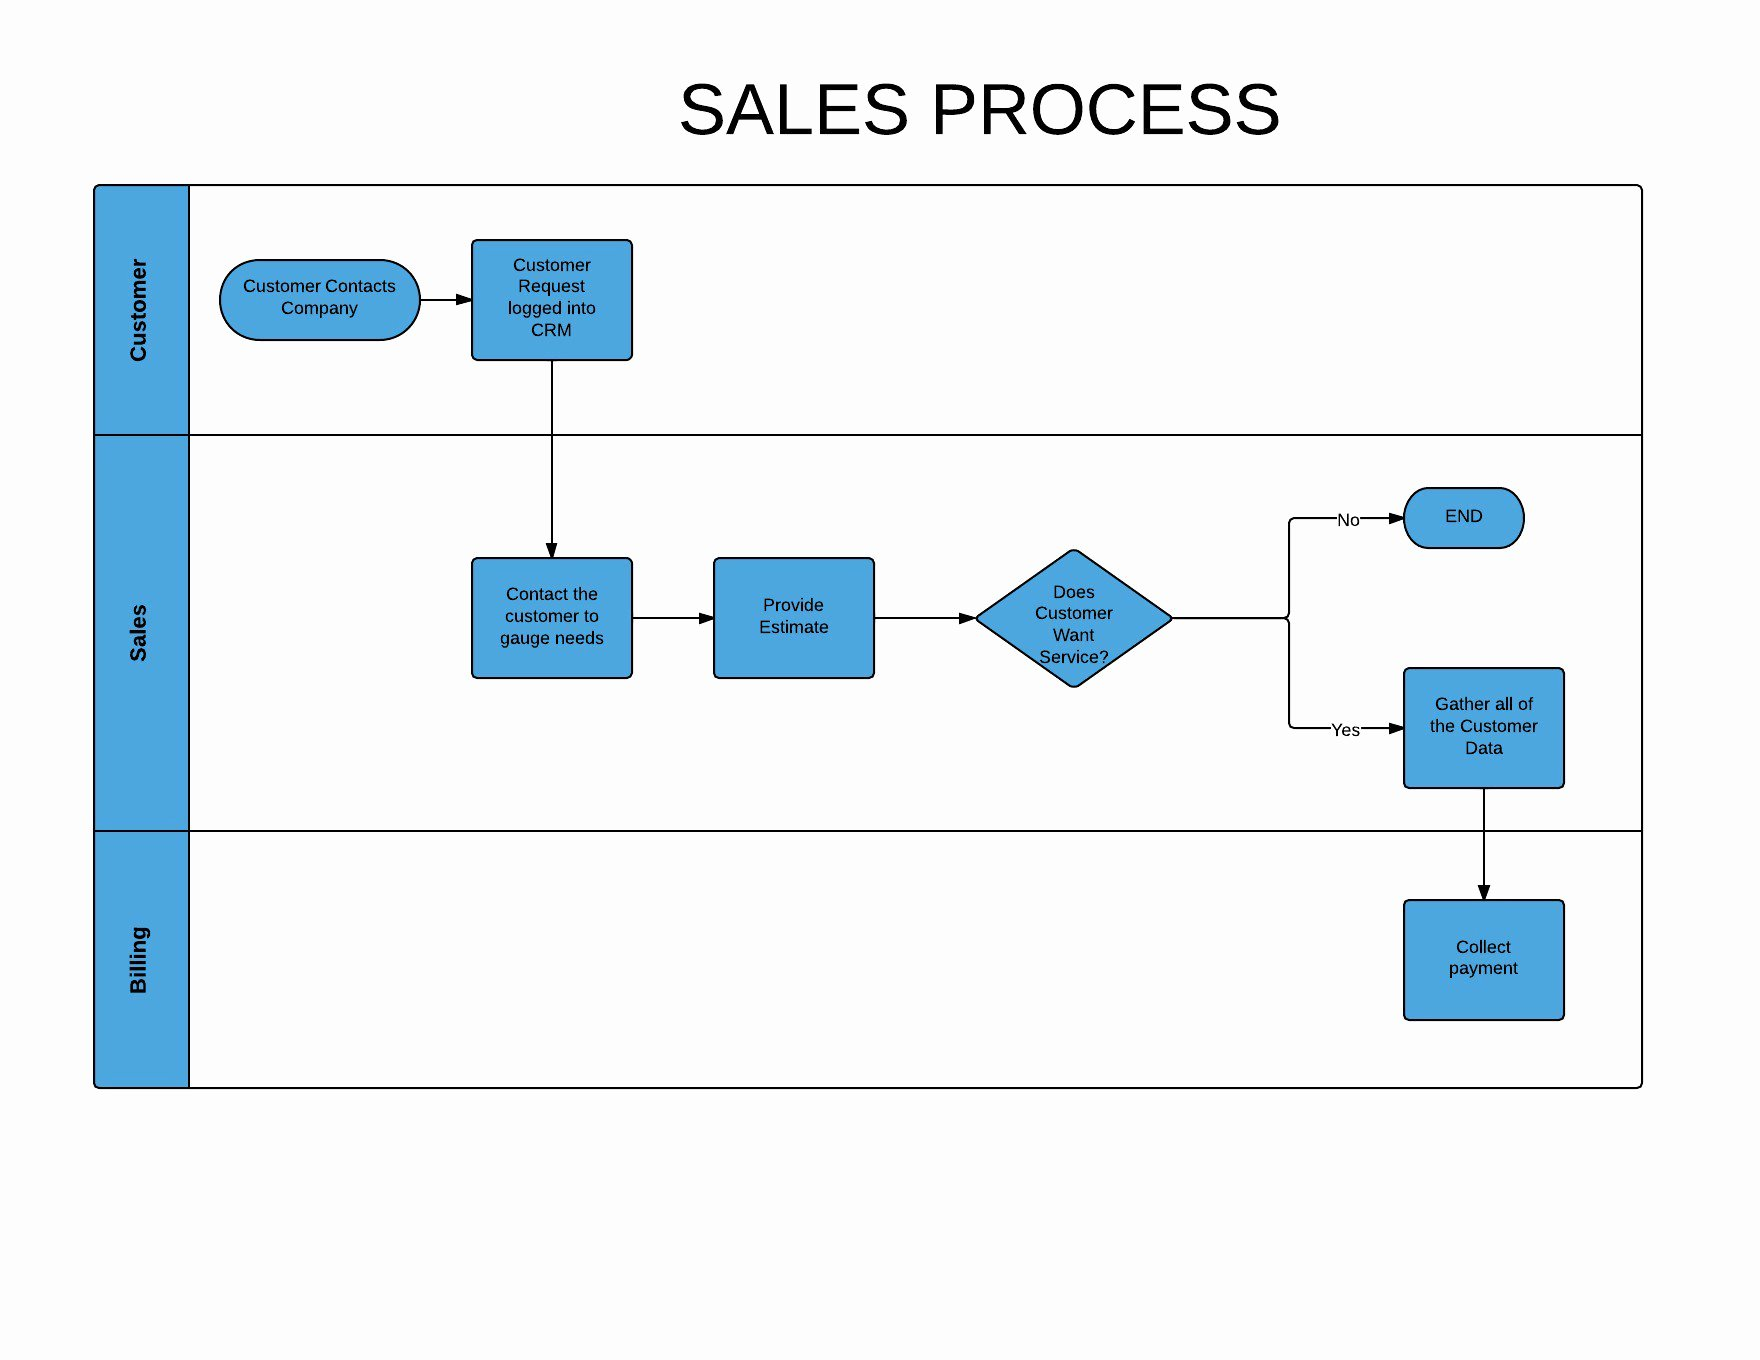 Sales Process Flow Chart Template Elegant Add A Flowchart Graphic to Improve Readability